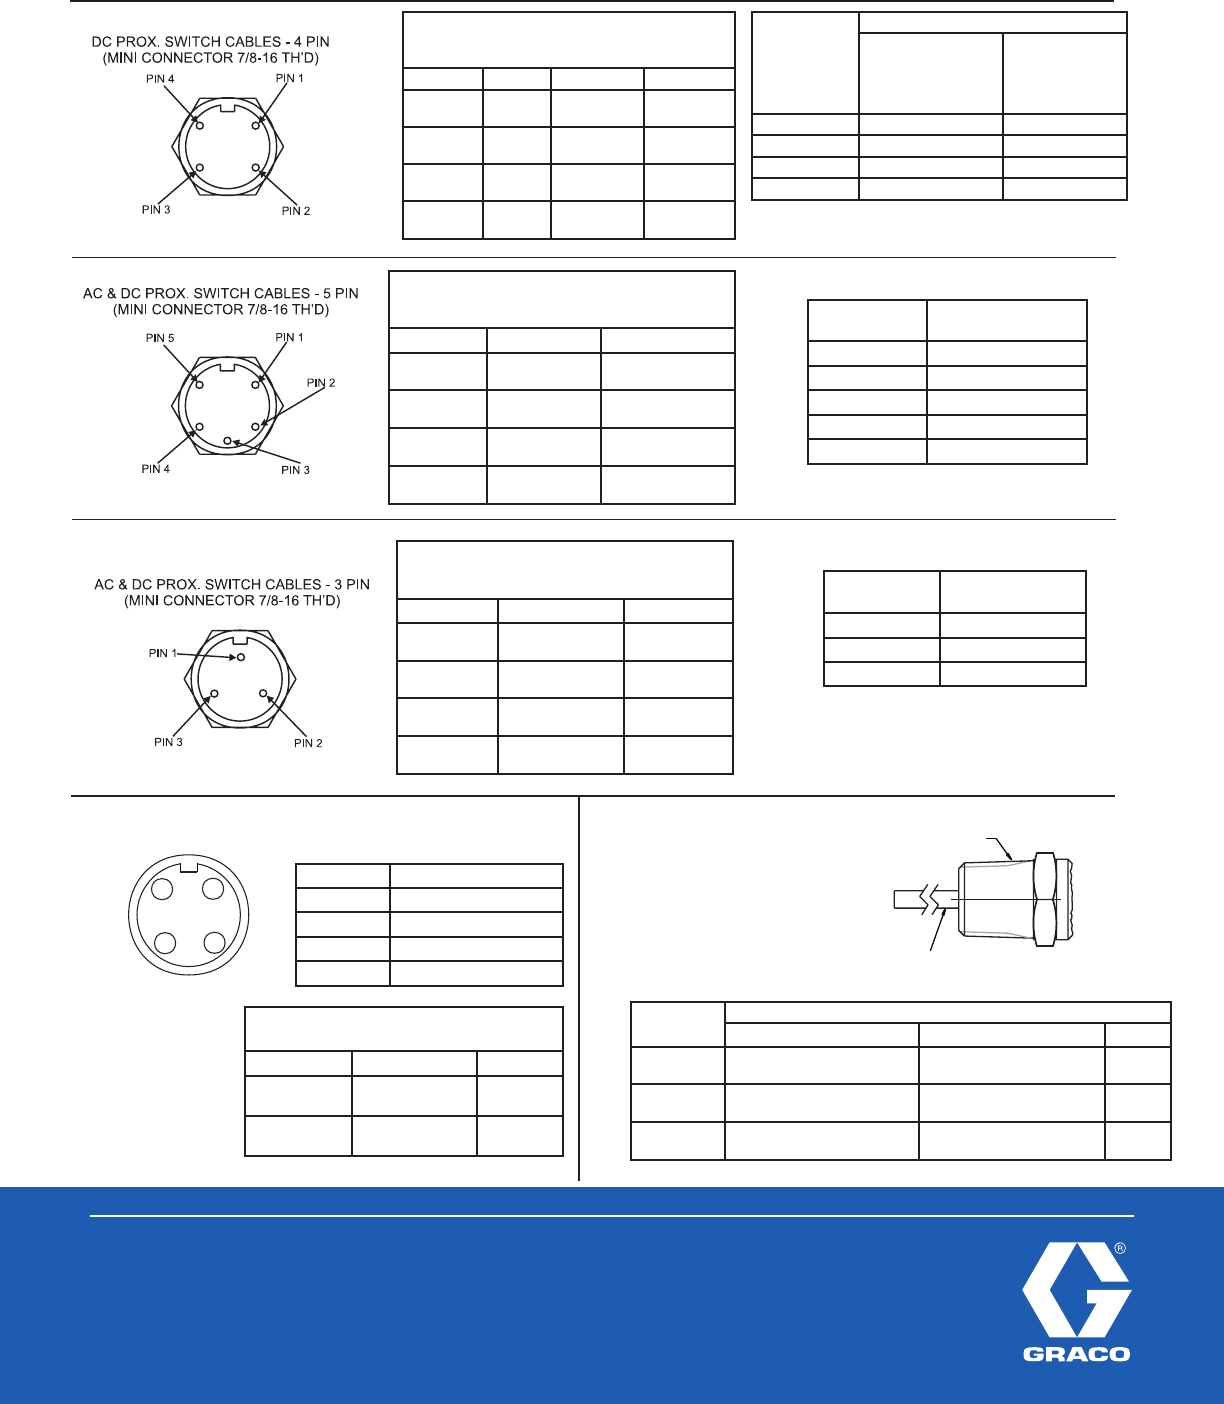 Graco Cycle Indicator Proximity Switches Users Manual Ac Dc Accessories Cables Offers A Variety Of Connecting For Use With Its